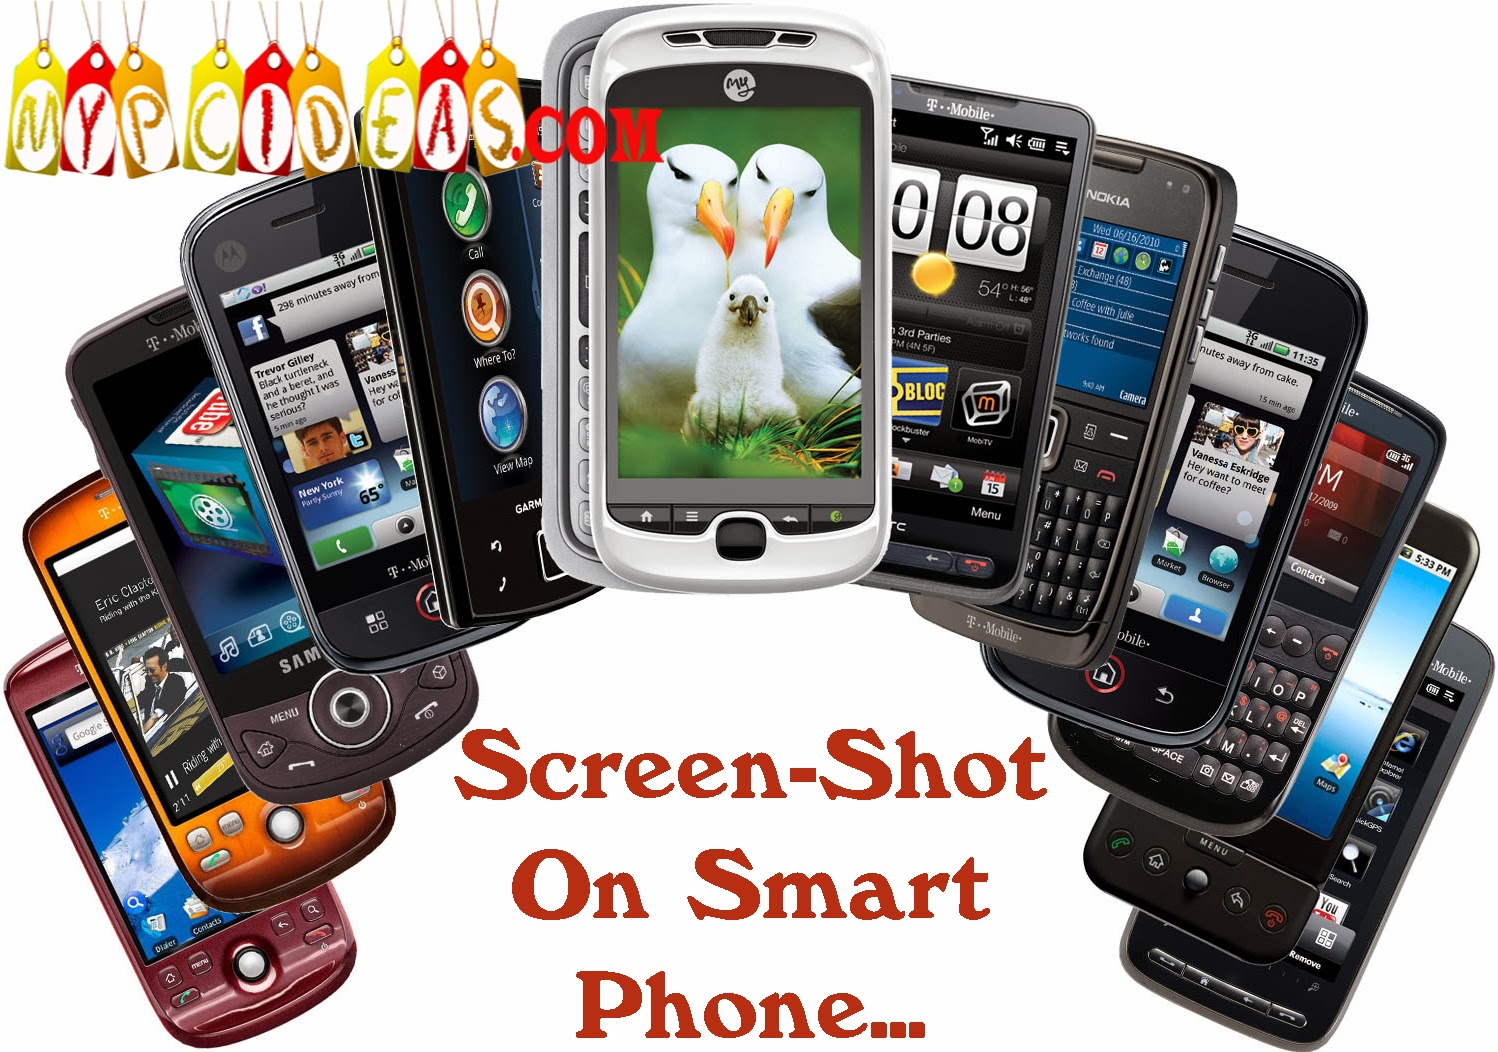 How to take a screen-shot in smartphone